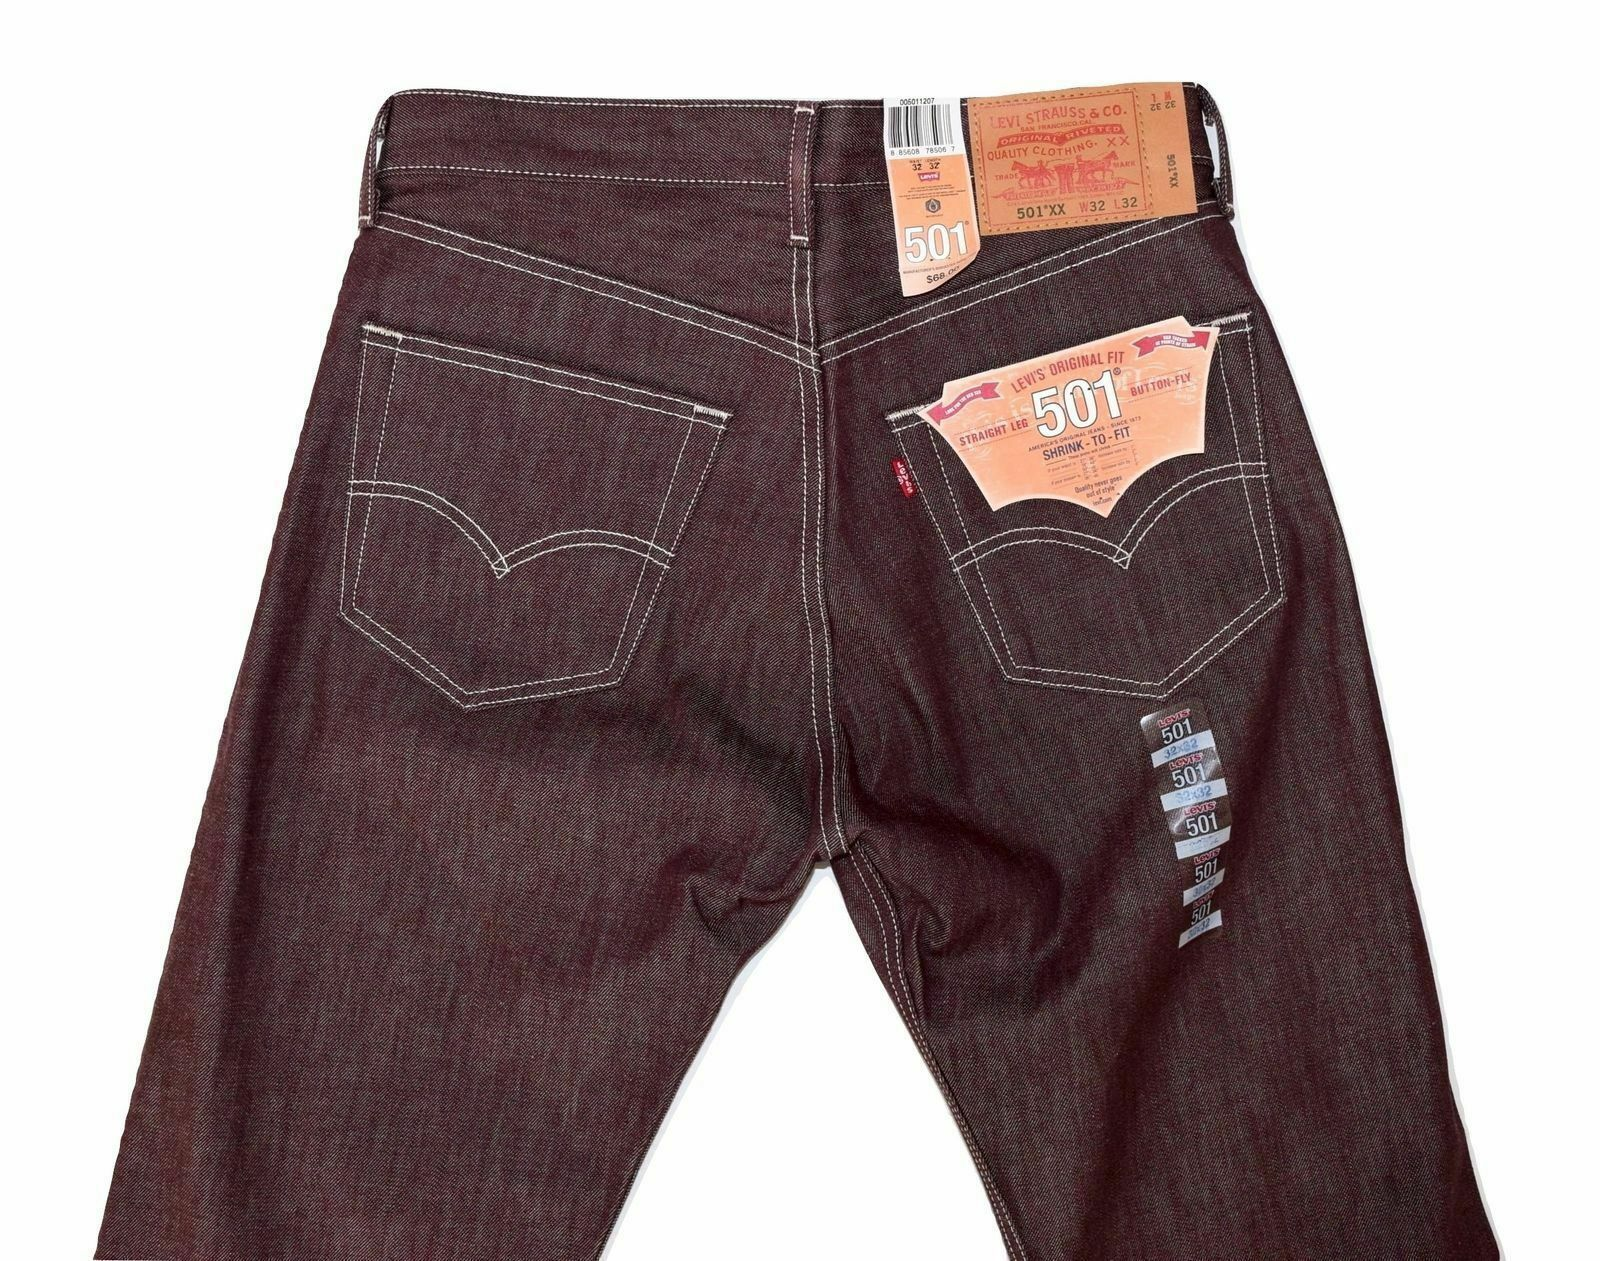 Levi's 501 Men's Original Fit Straight Leg Jeans Button Fly 501-1207